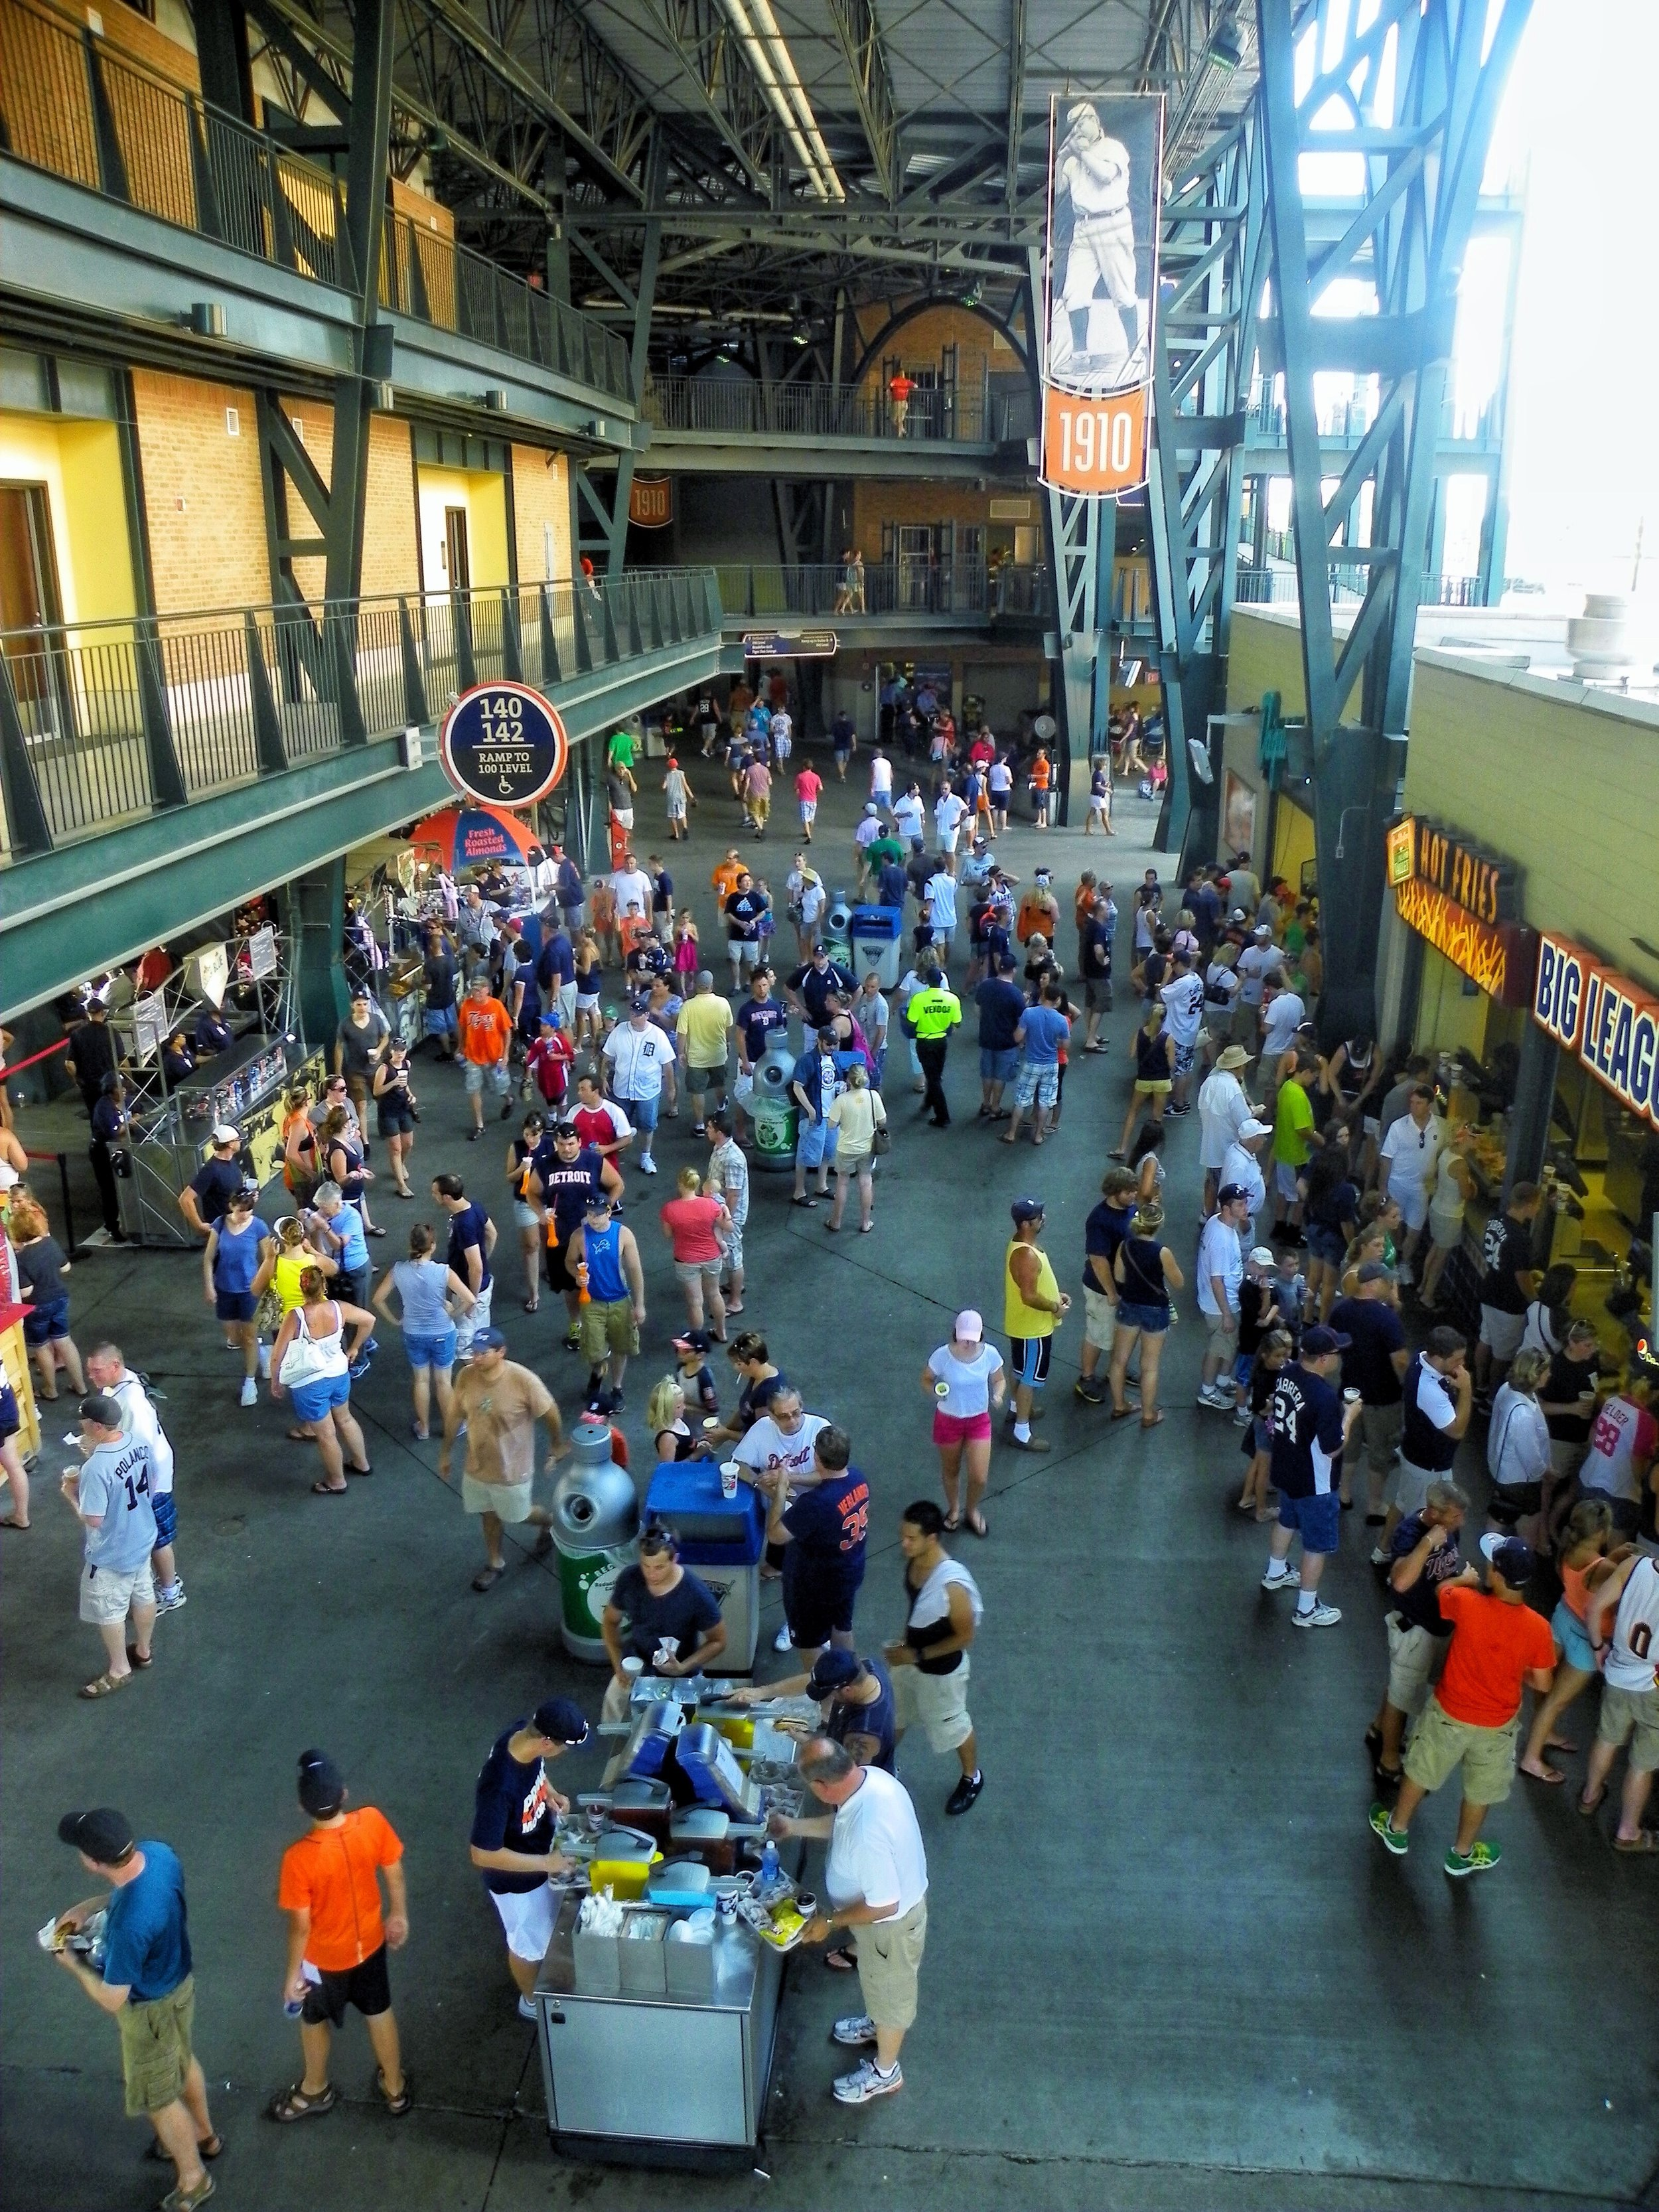 A view of the main concourse from the second level